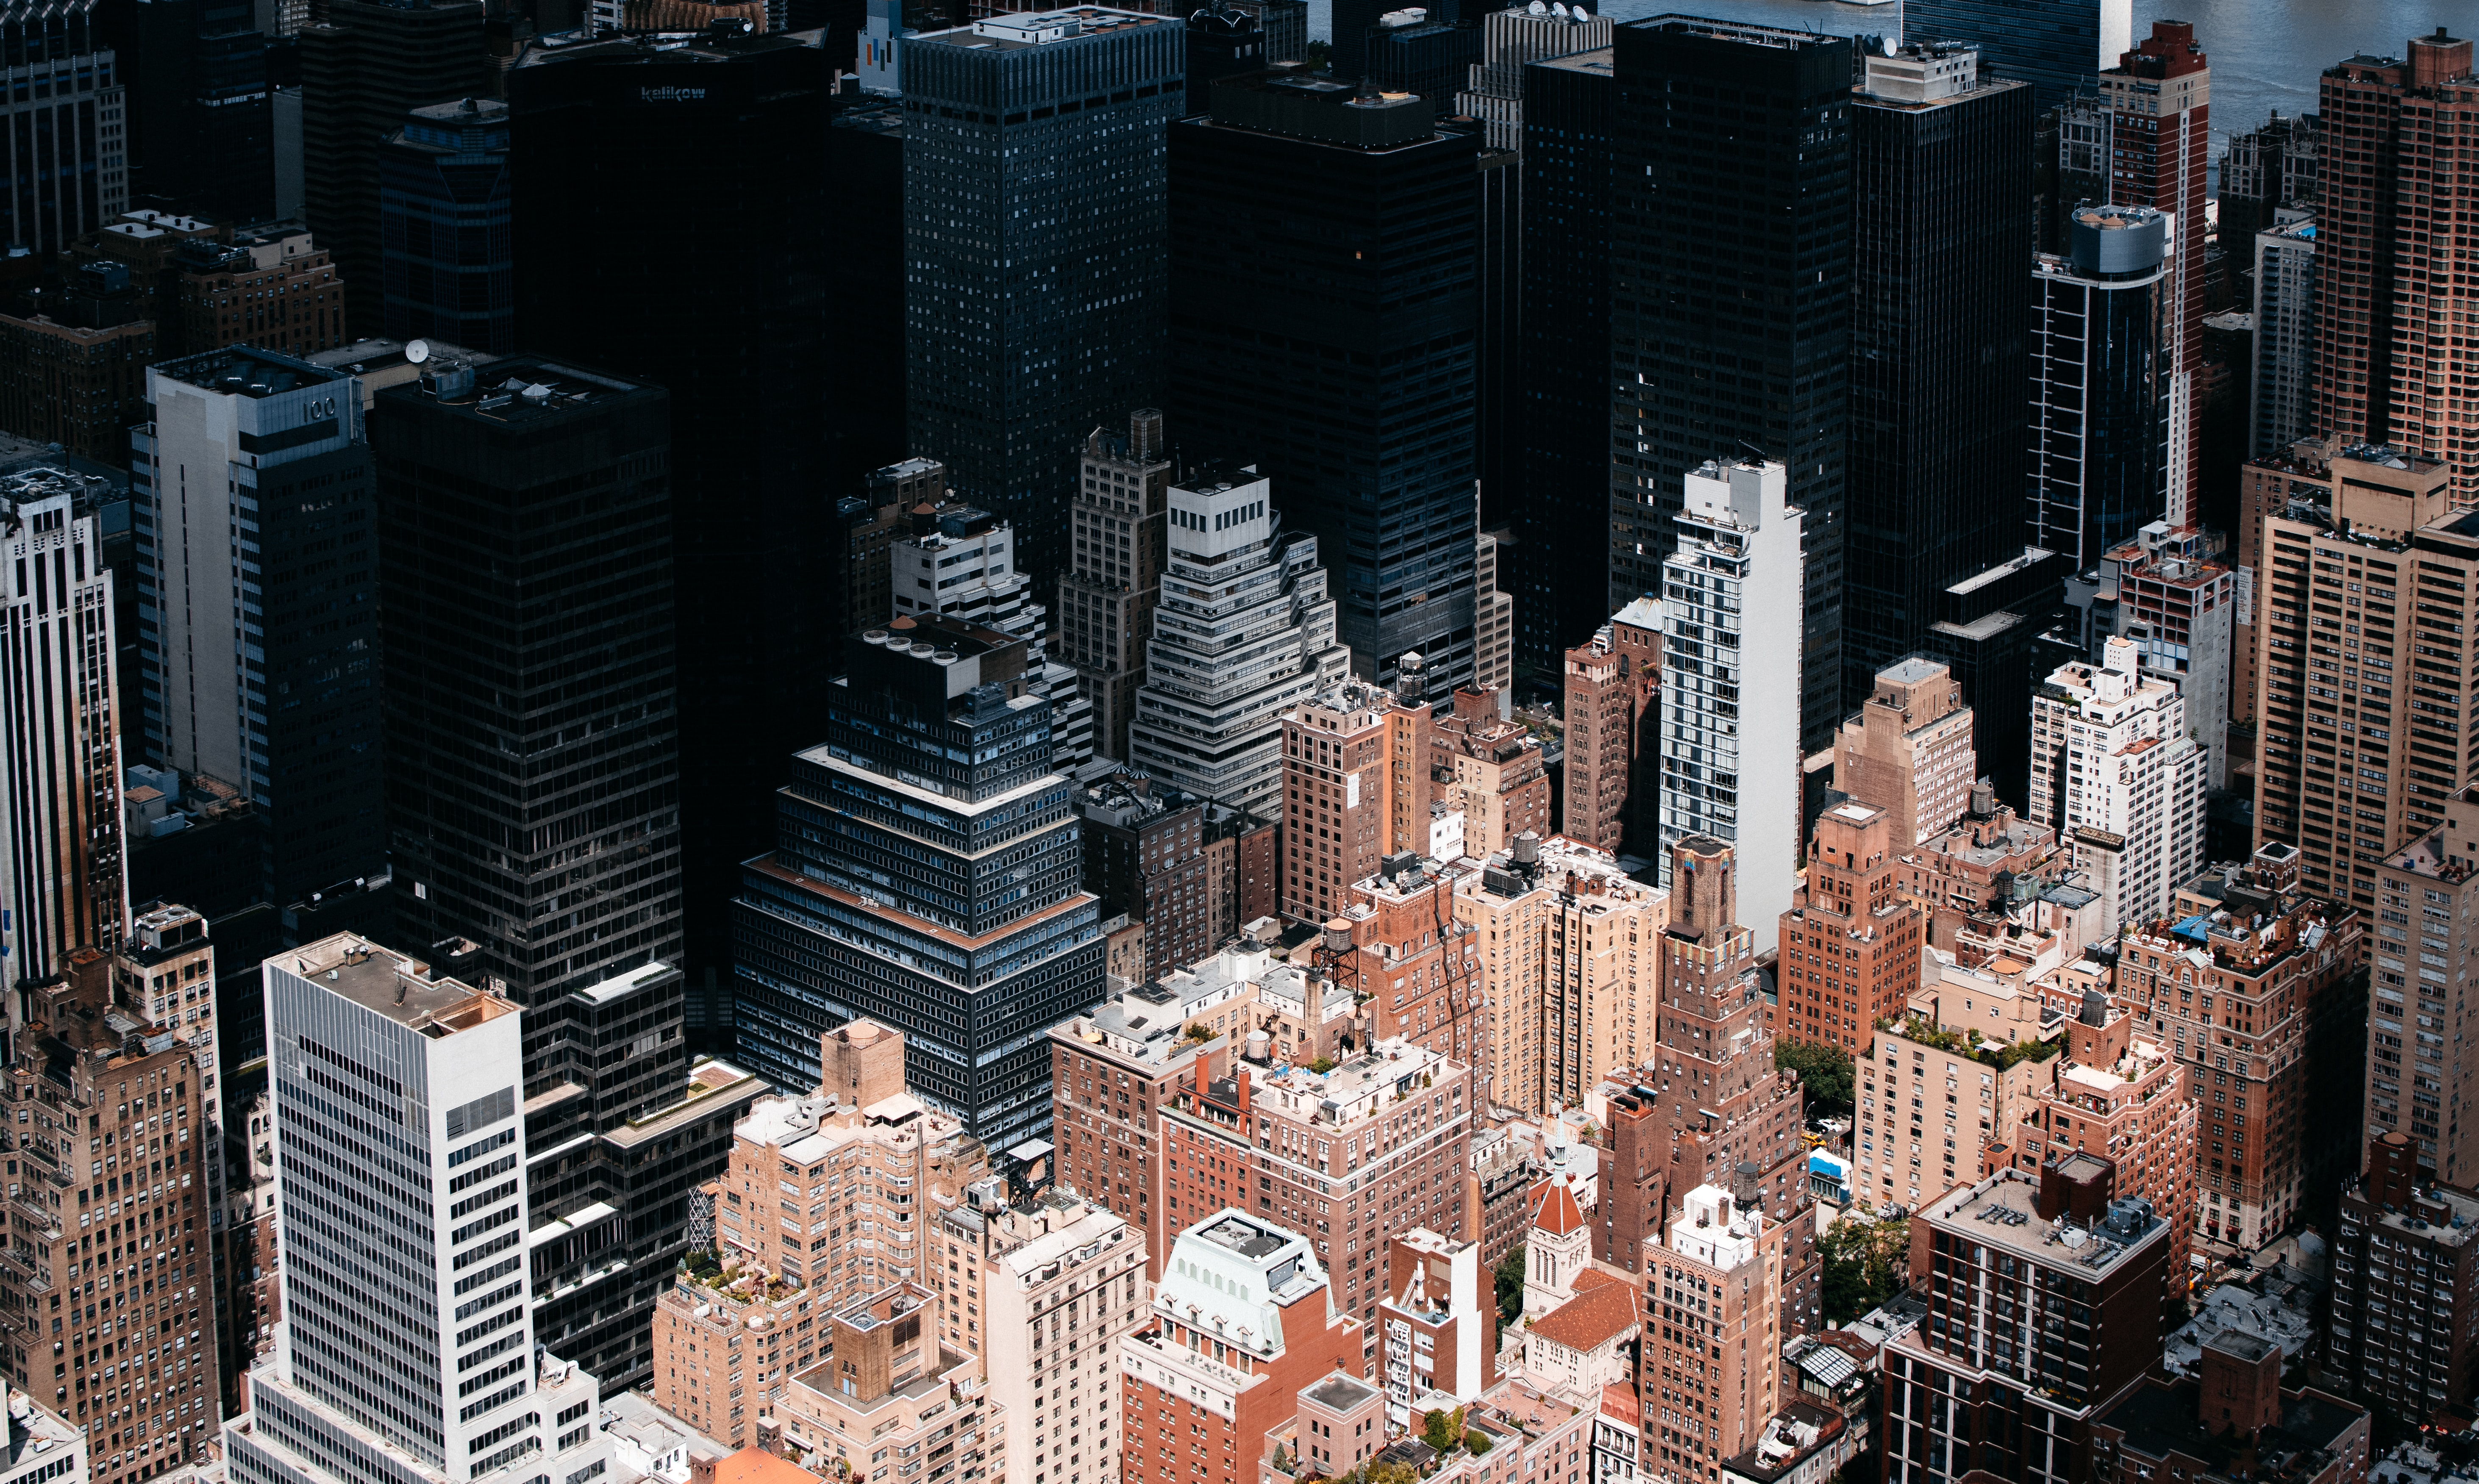 Aerial view of New York City's downtown skyscrapers with dark shadow